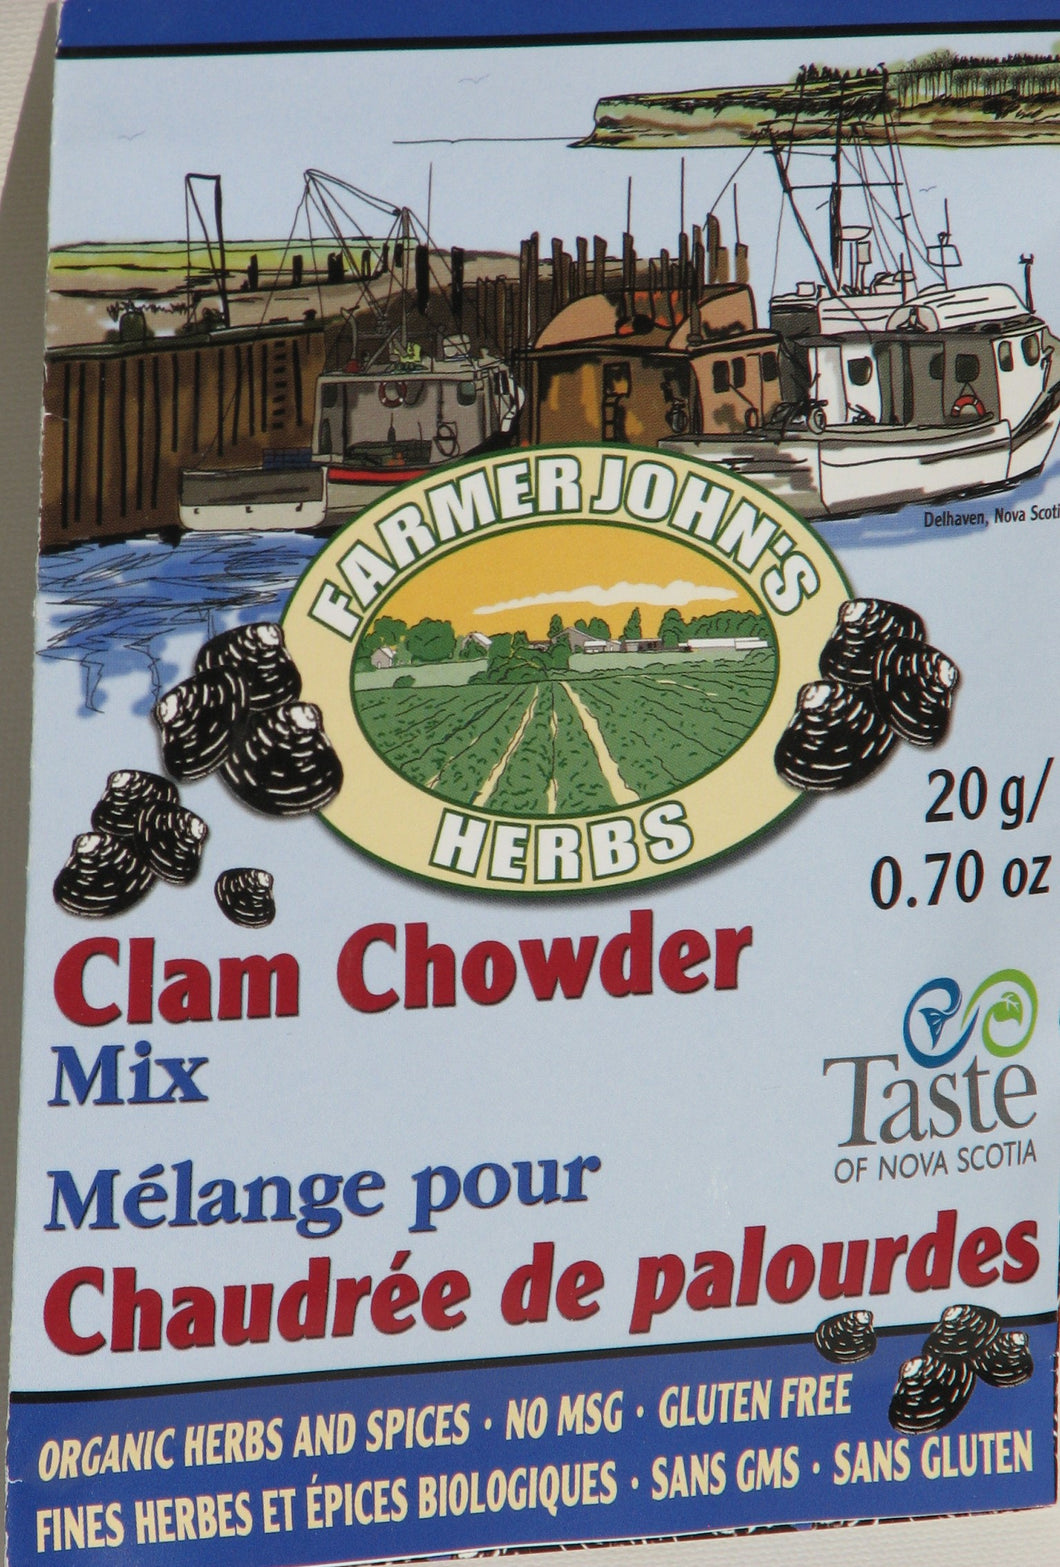 Chowder Mix: Clam